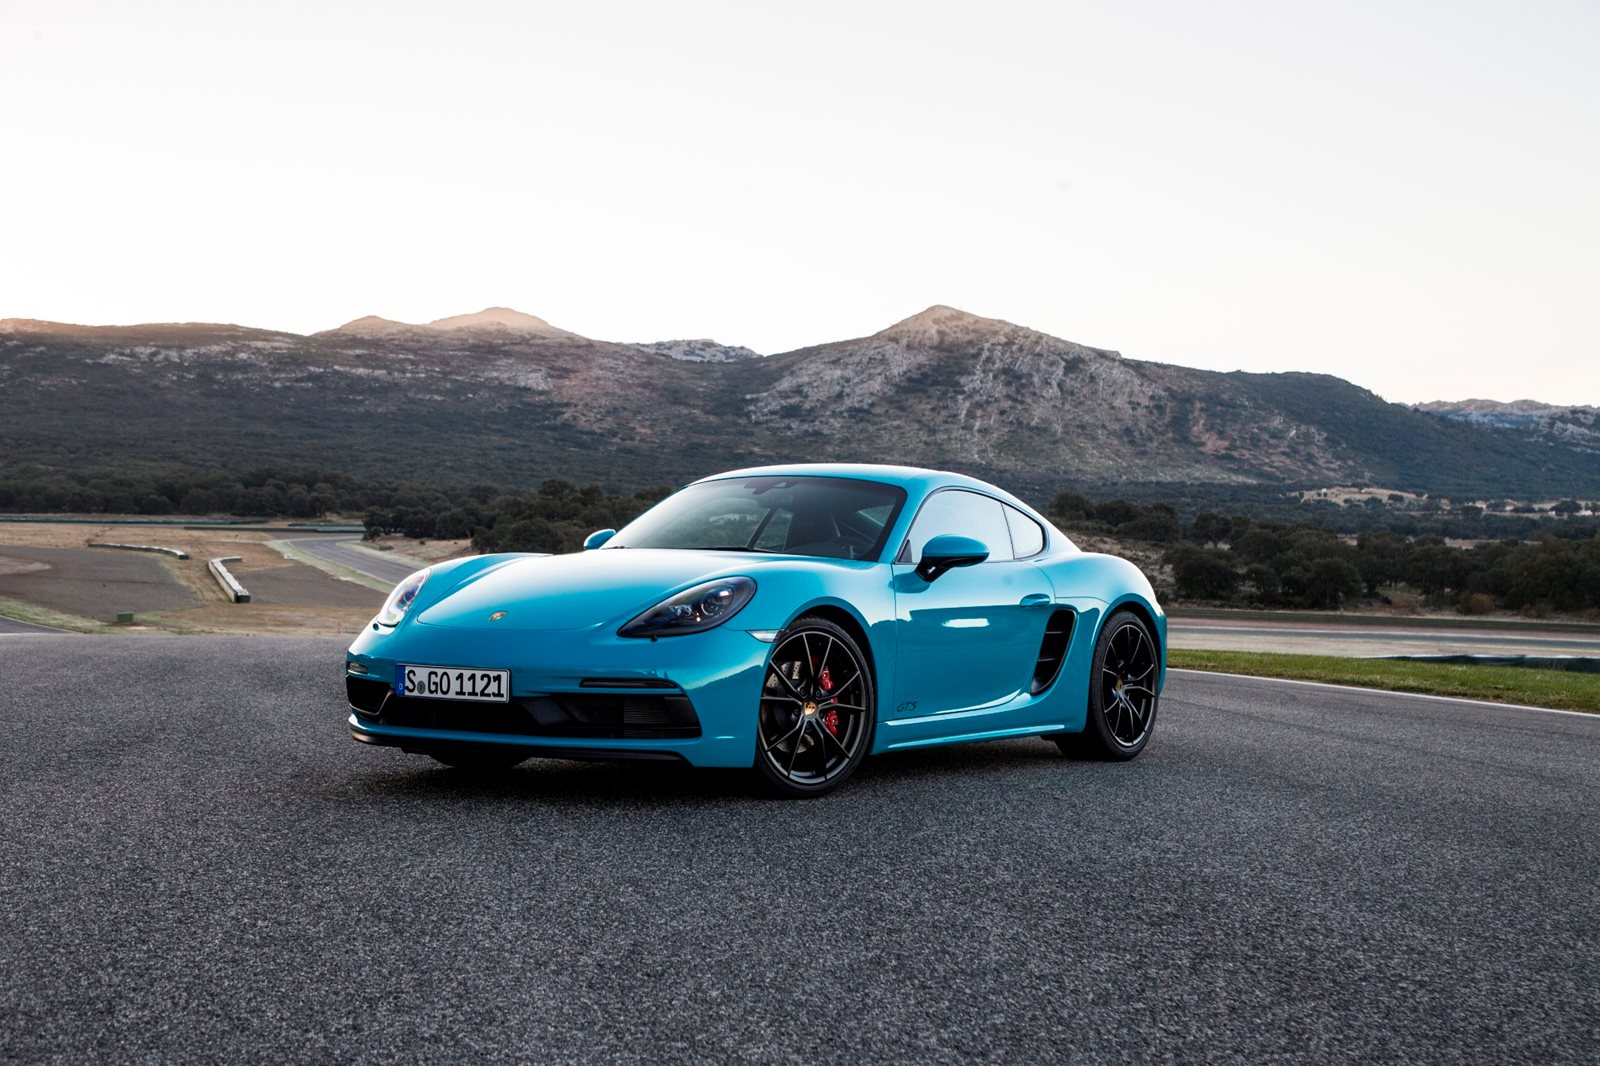 2018 Porsche 718 Cayman Coupe Review, Trims, Specs and ...